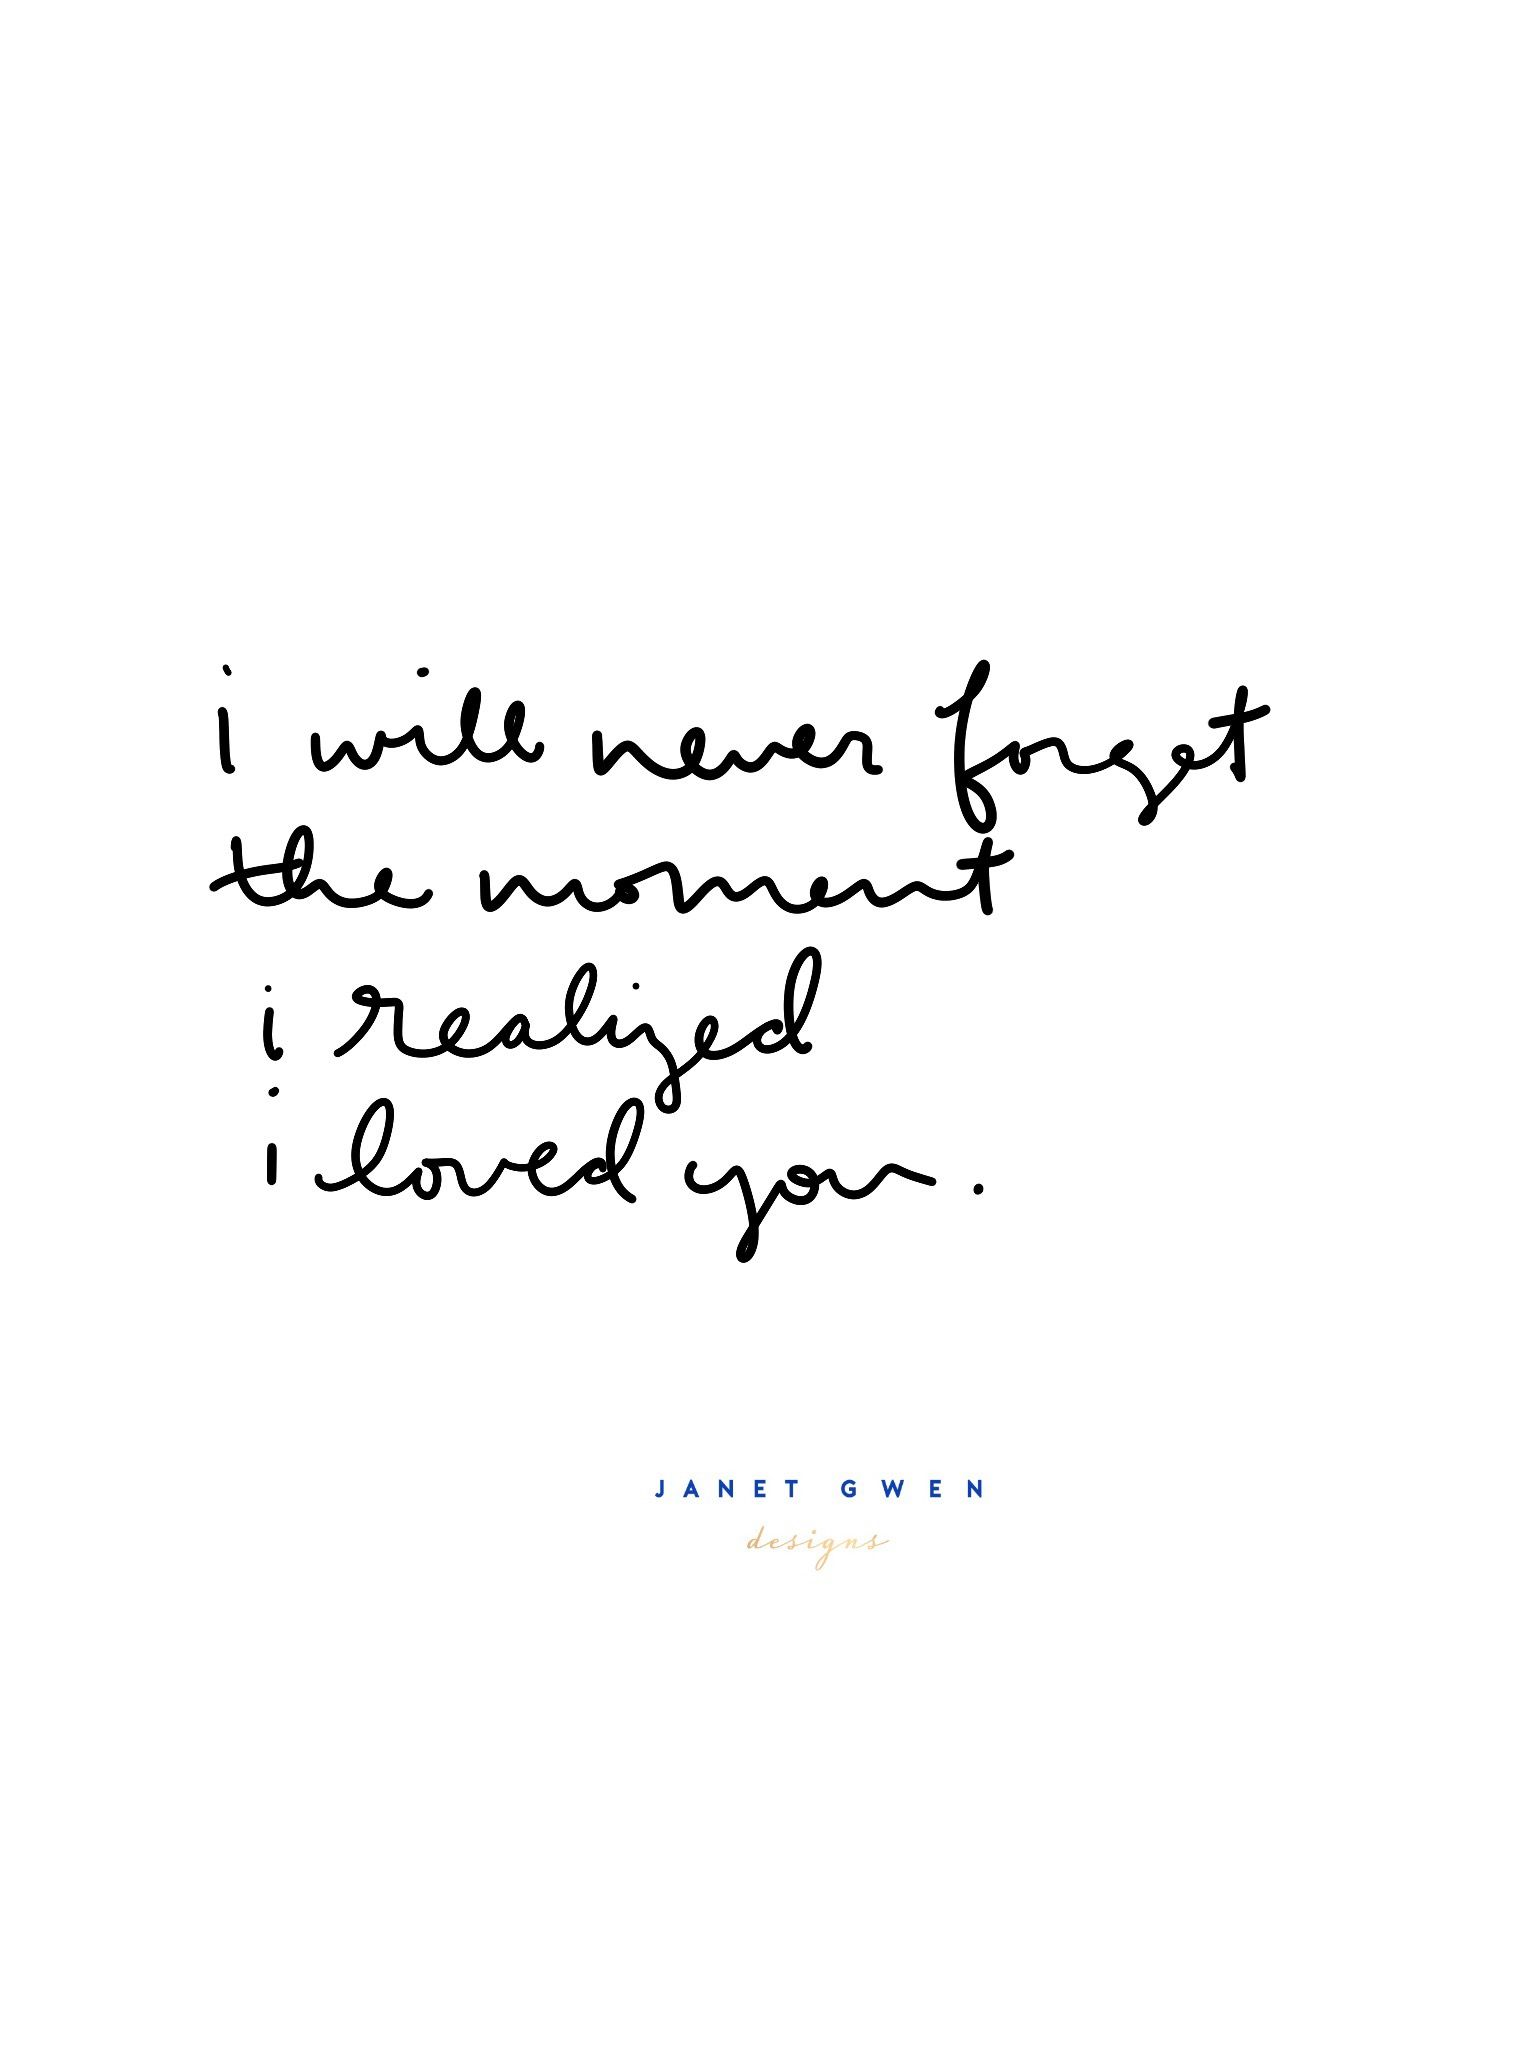 i will never forget the moment i realized i loved you. Rose and Marble Bedroom | Quotes | Quotes To Live By | Quotes to Handletter | Hand Lettering | Hand Lettering Quotes | Handlettering Quotes | Quotes Deep | Quotes Inspirational | Quotes about Strength | Phone Wallpaper Quotes | Phone Wallpaper | Love Quotes | Relationship Quotes | Couple Quotes | Love Quotes For Him | Relationship Goals |